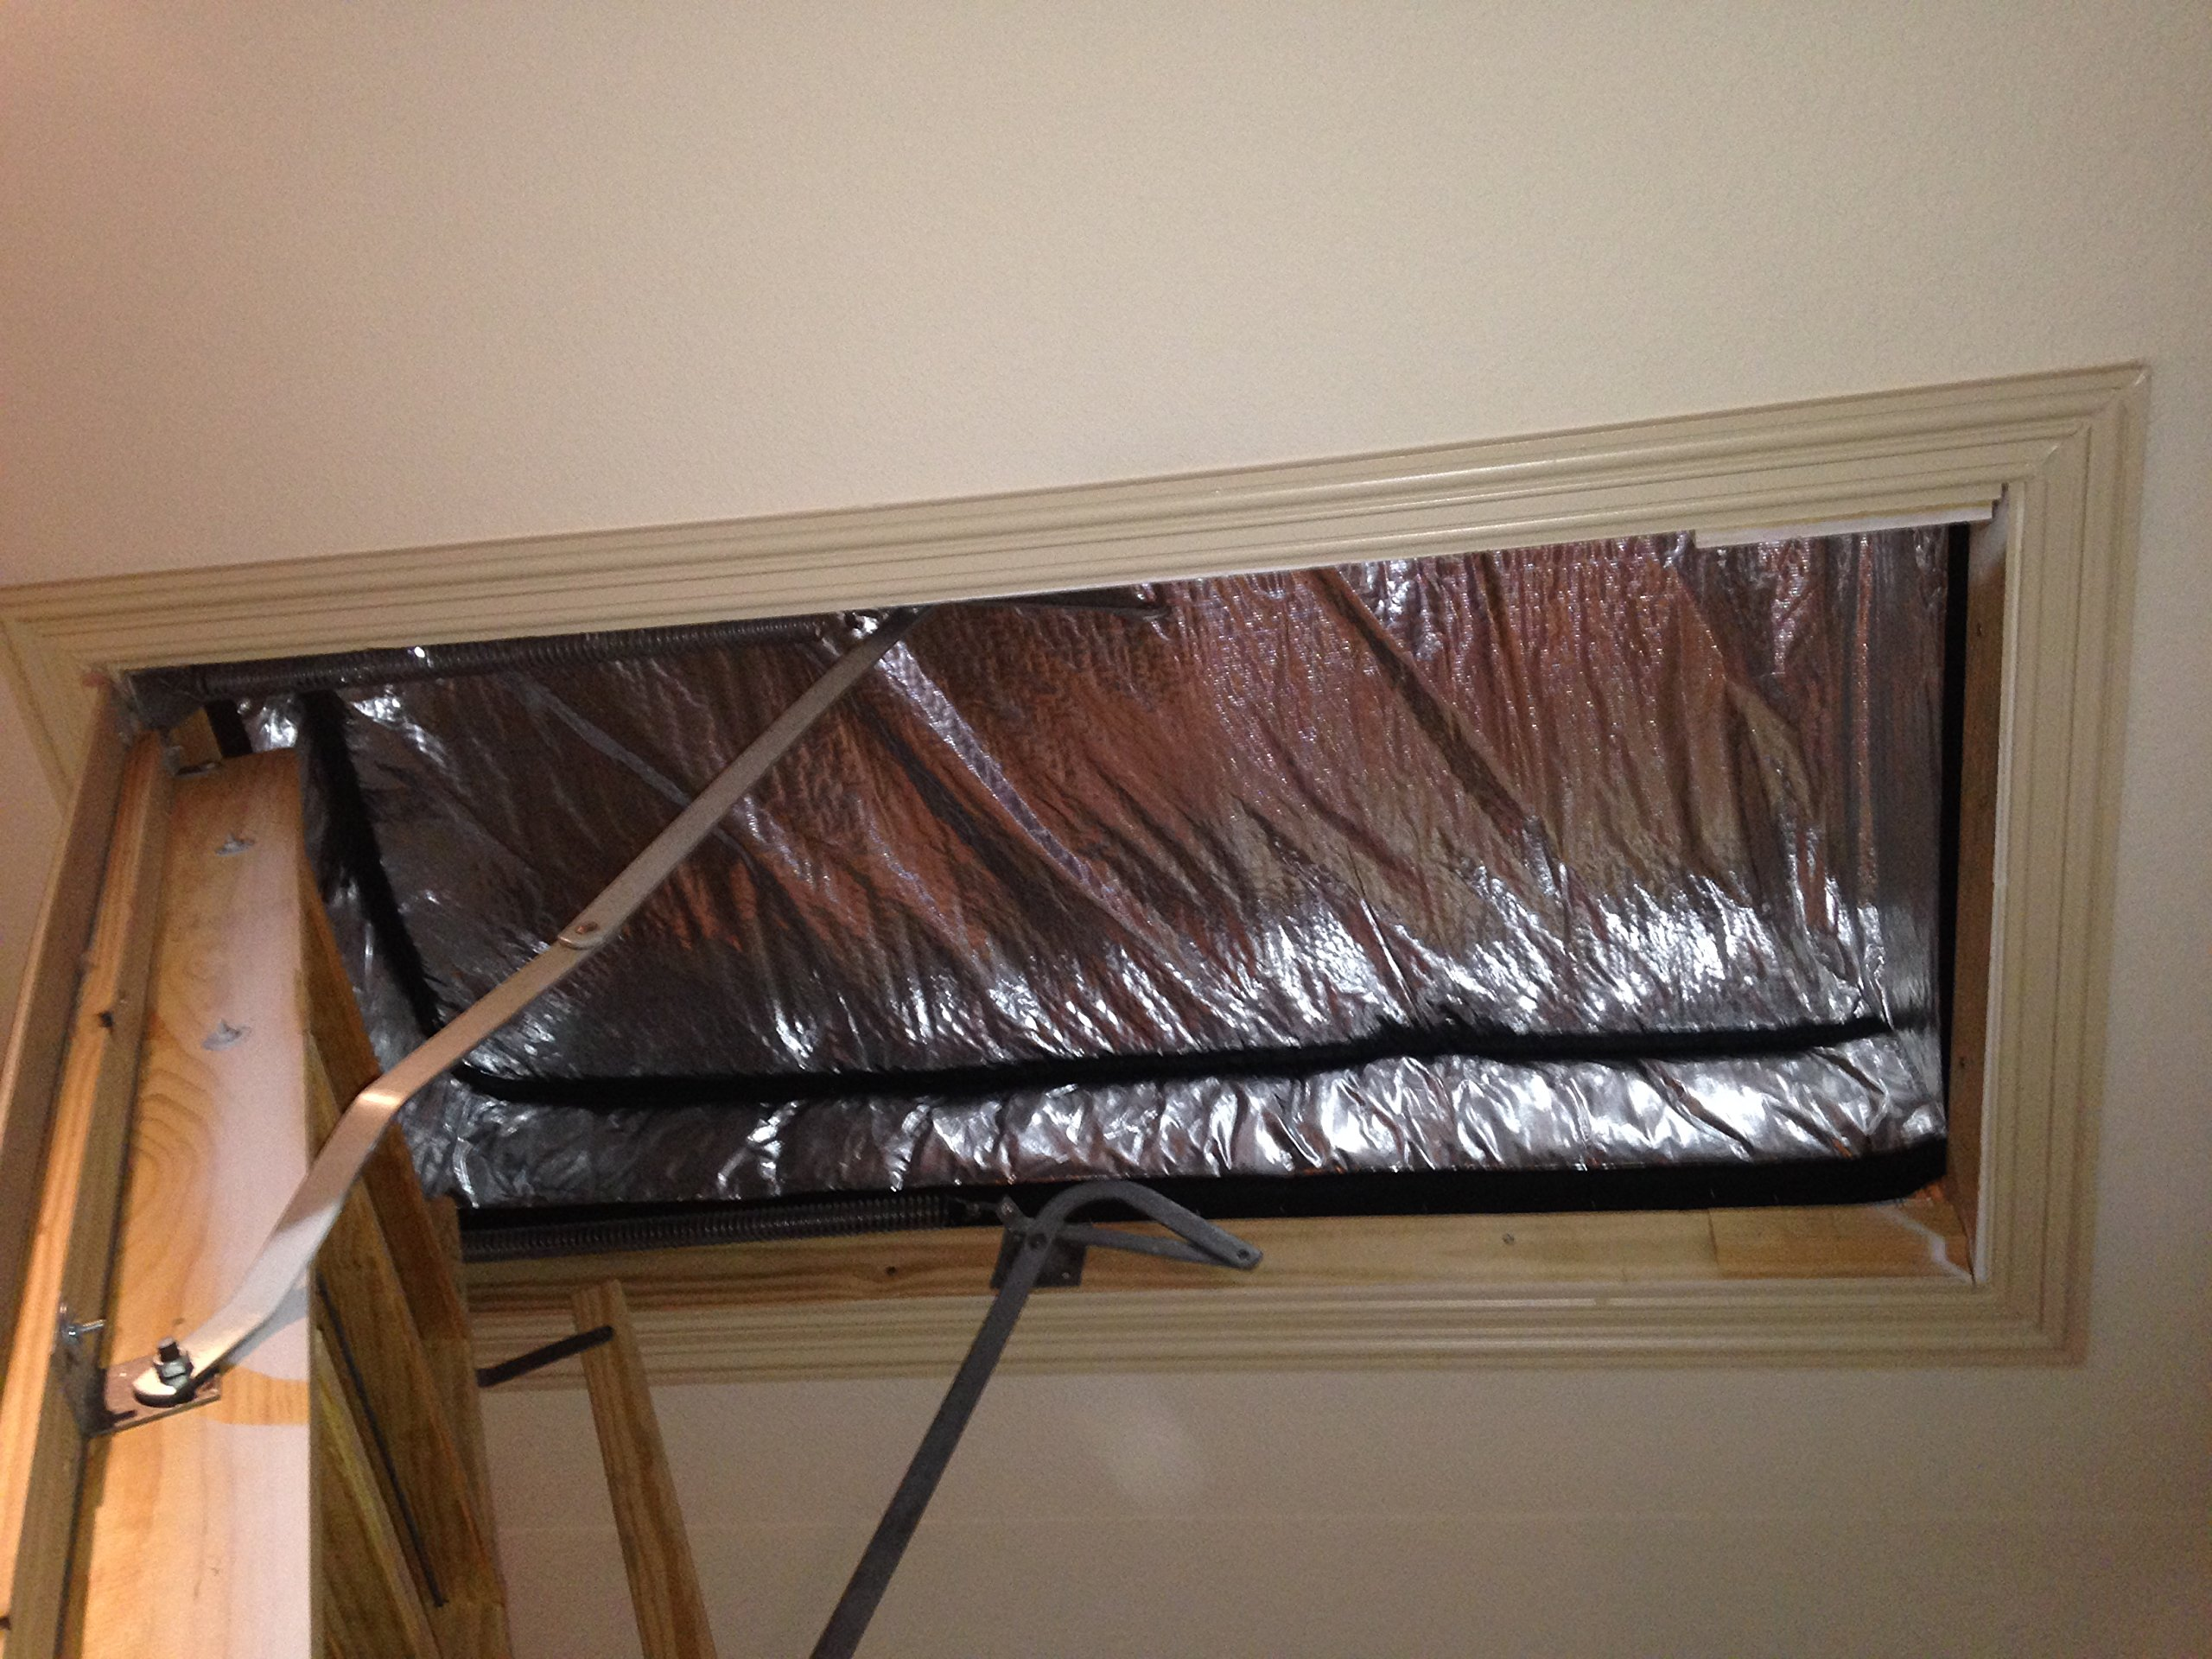 Hatchway Attic Stair Cover with Arma Foil Radiant Barrier by Arma Foil Attic Covers (Image #1)